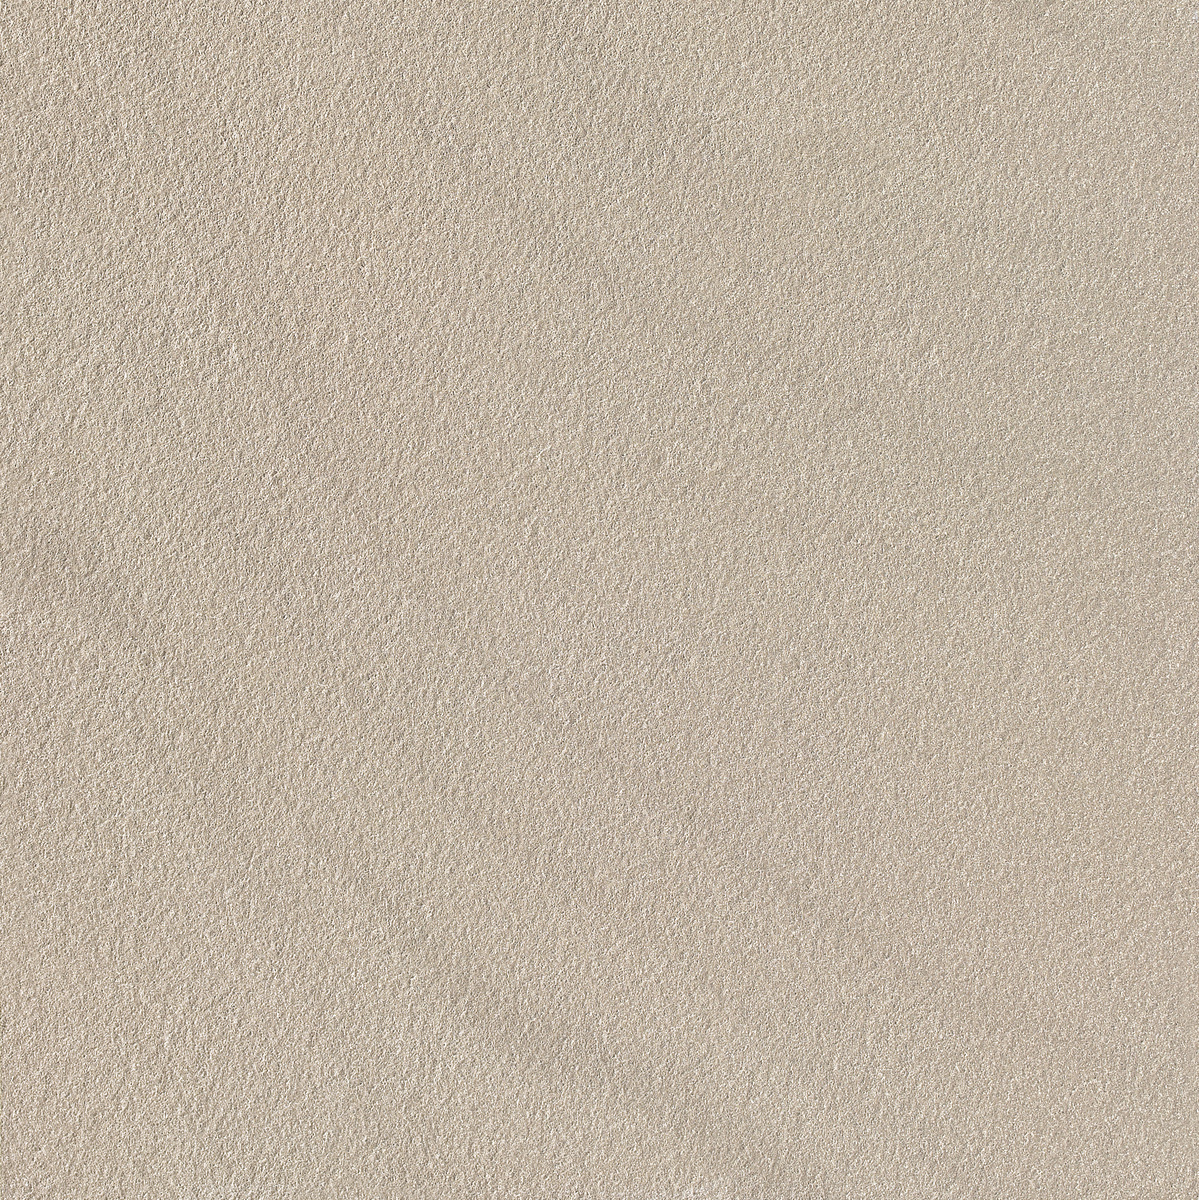 Tiles - PERTH - Textured Grey 300x600mm (8 pieces)